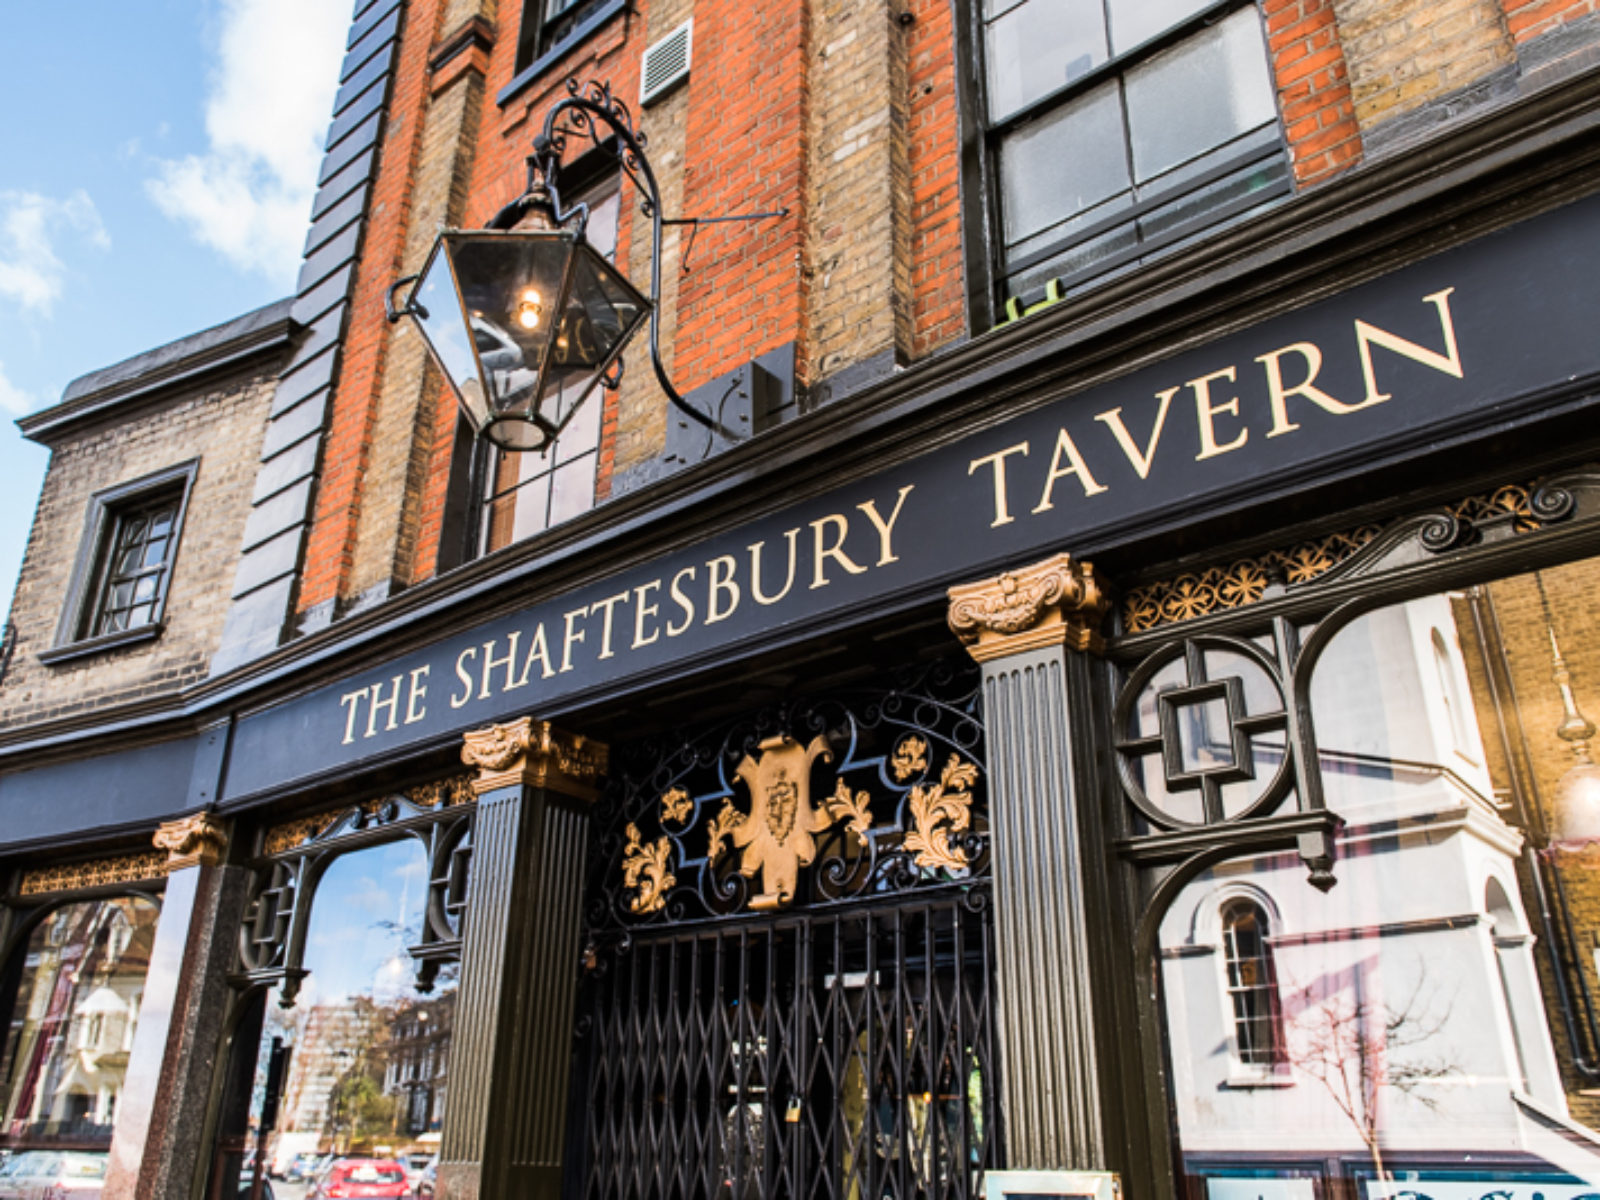 Shaftesbury Tavern Outside